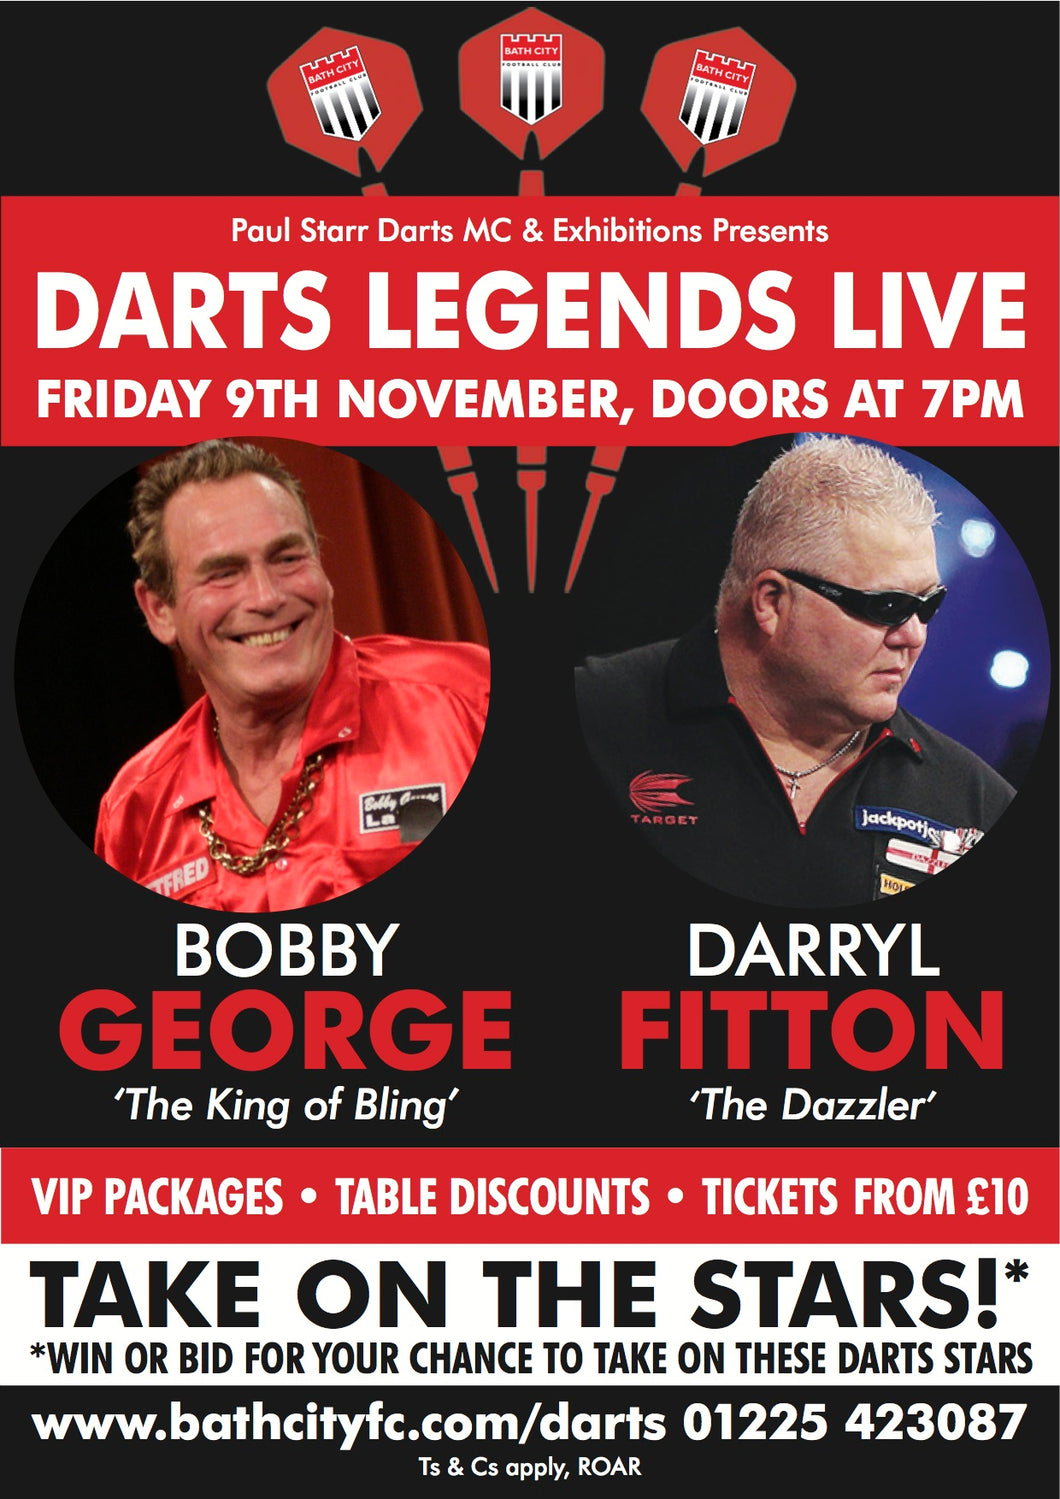 Darts Legends Live at Bath City - Exclusive Sponsor Offer ONLINE SALES NOW CLOSED - TICKETS AVAILABLE ON THE DOOR